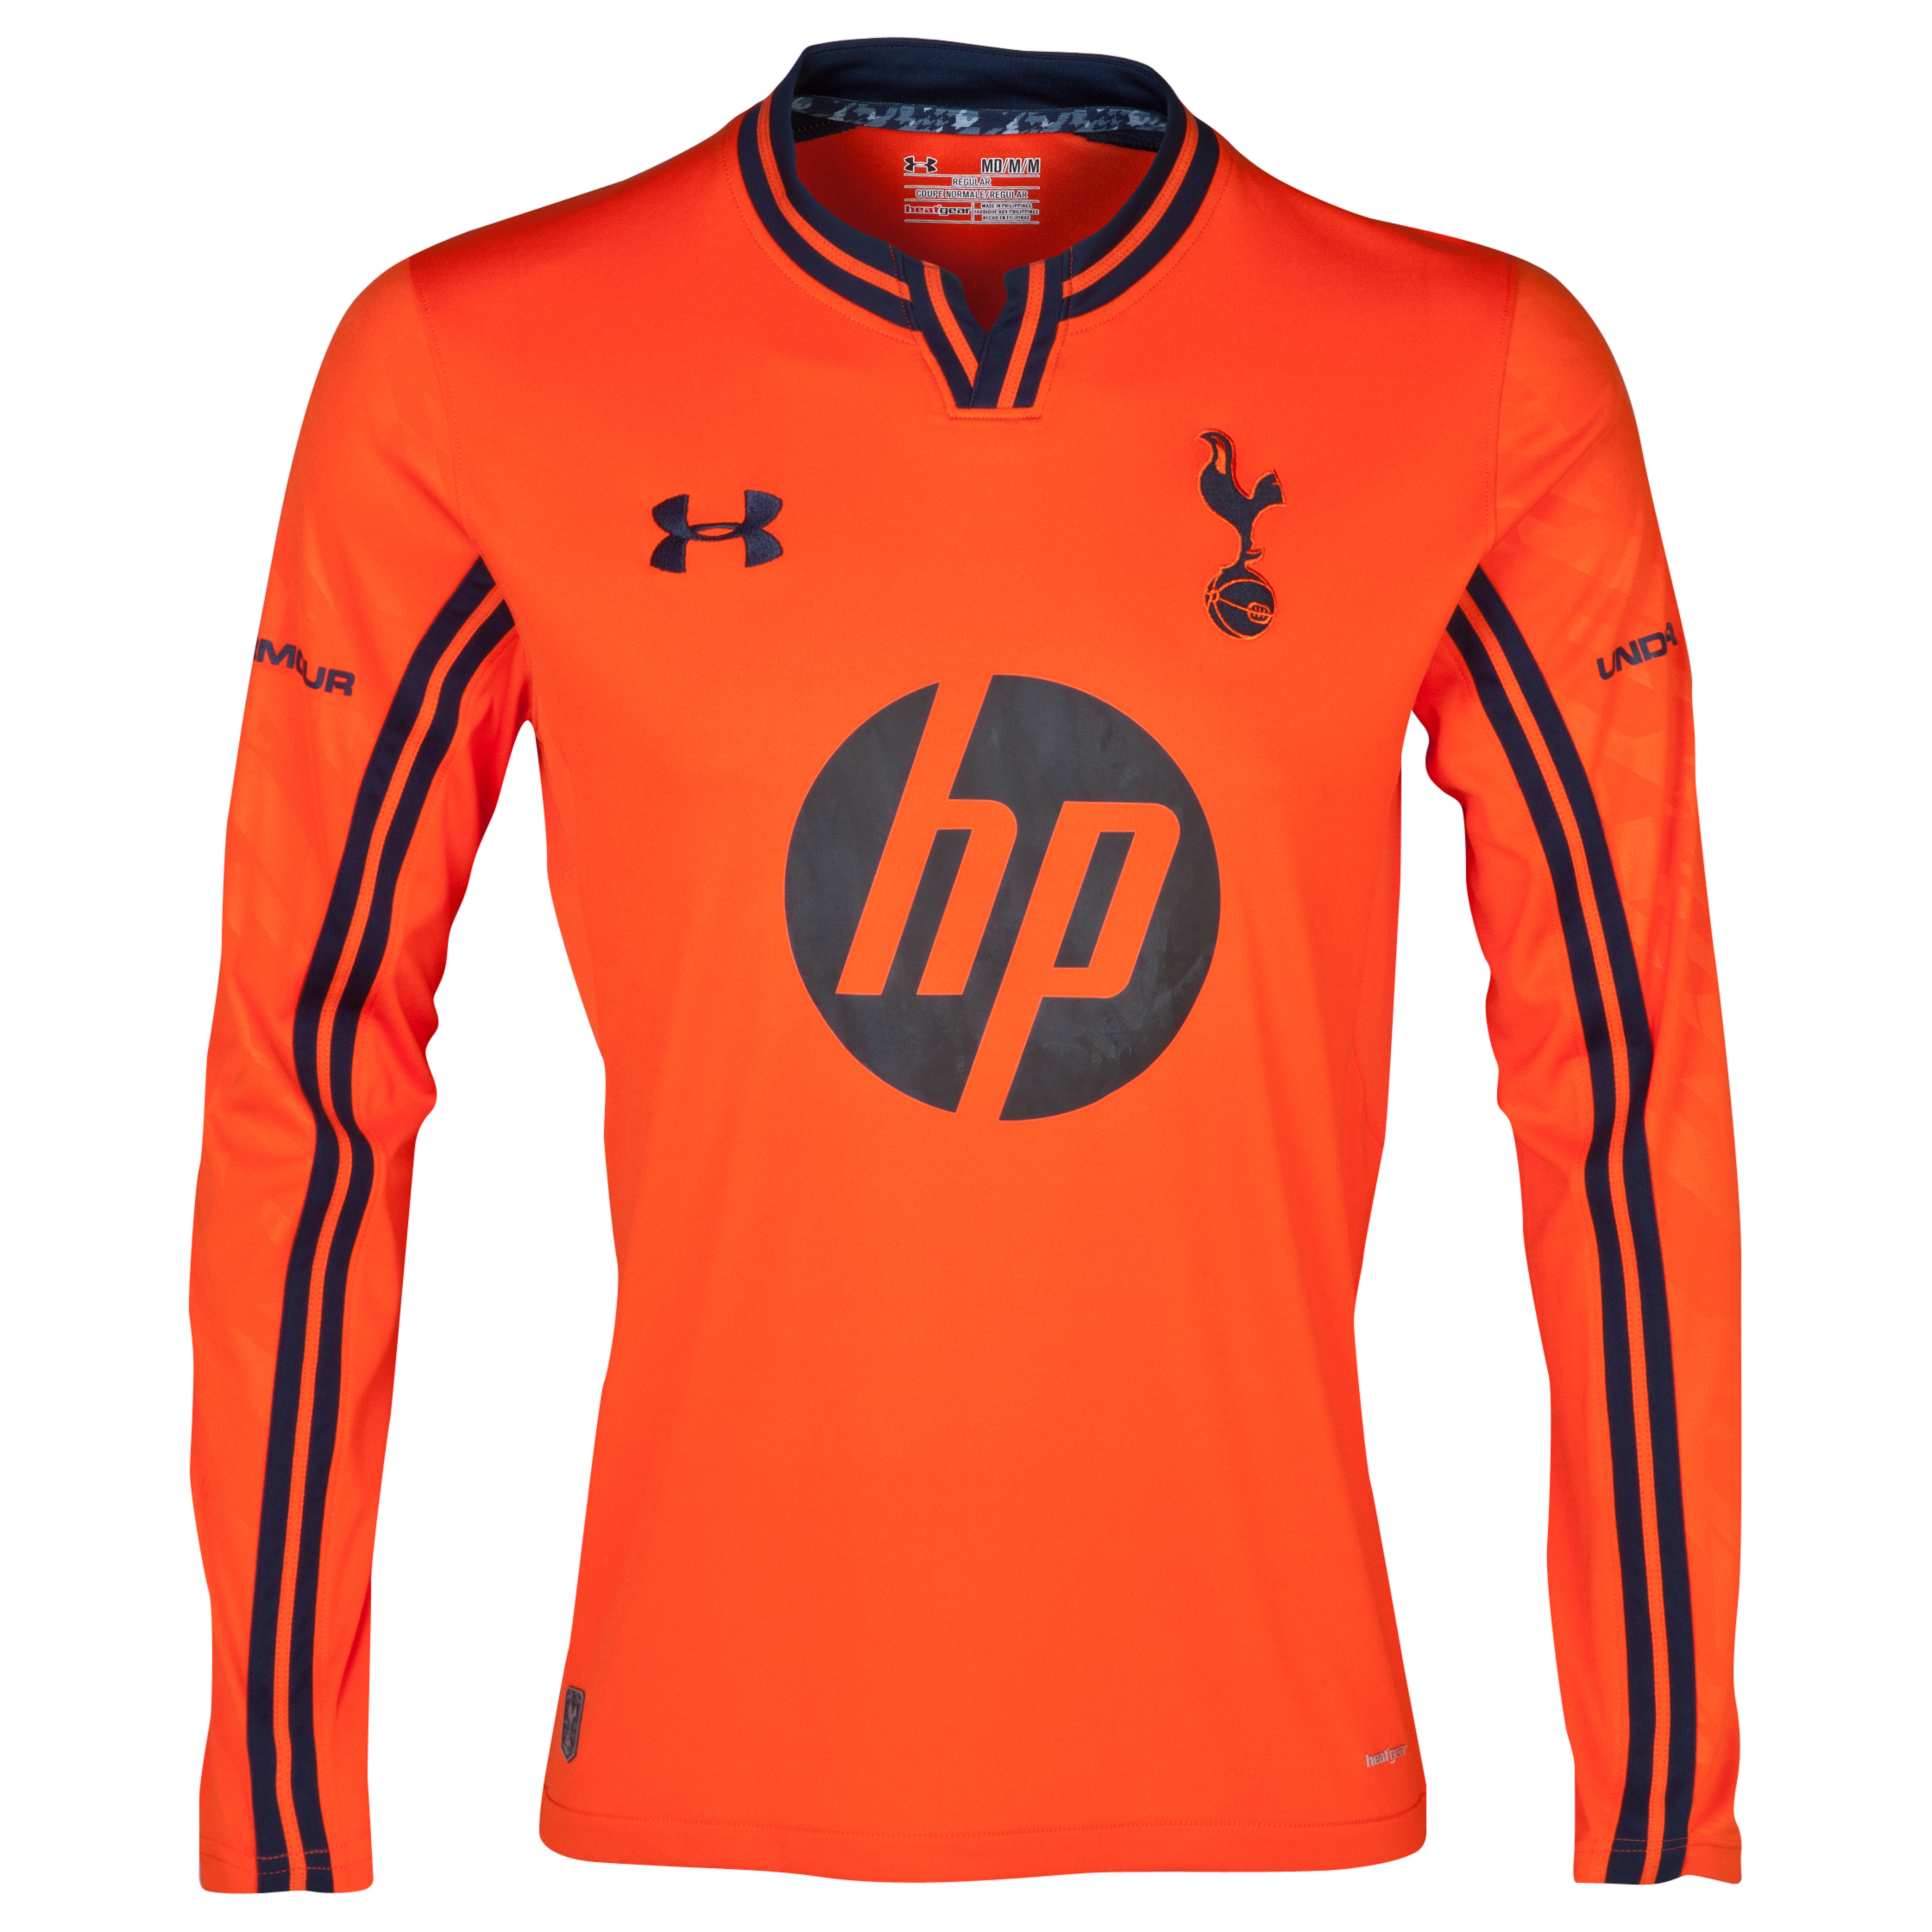 Tottenham Hotspur Home Goalkeeper Shirt 2013/14